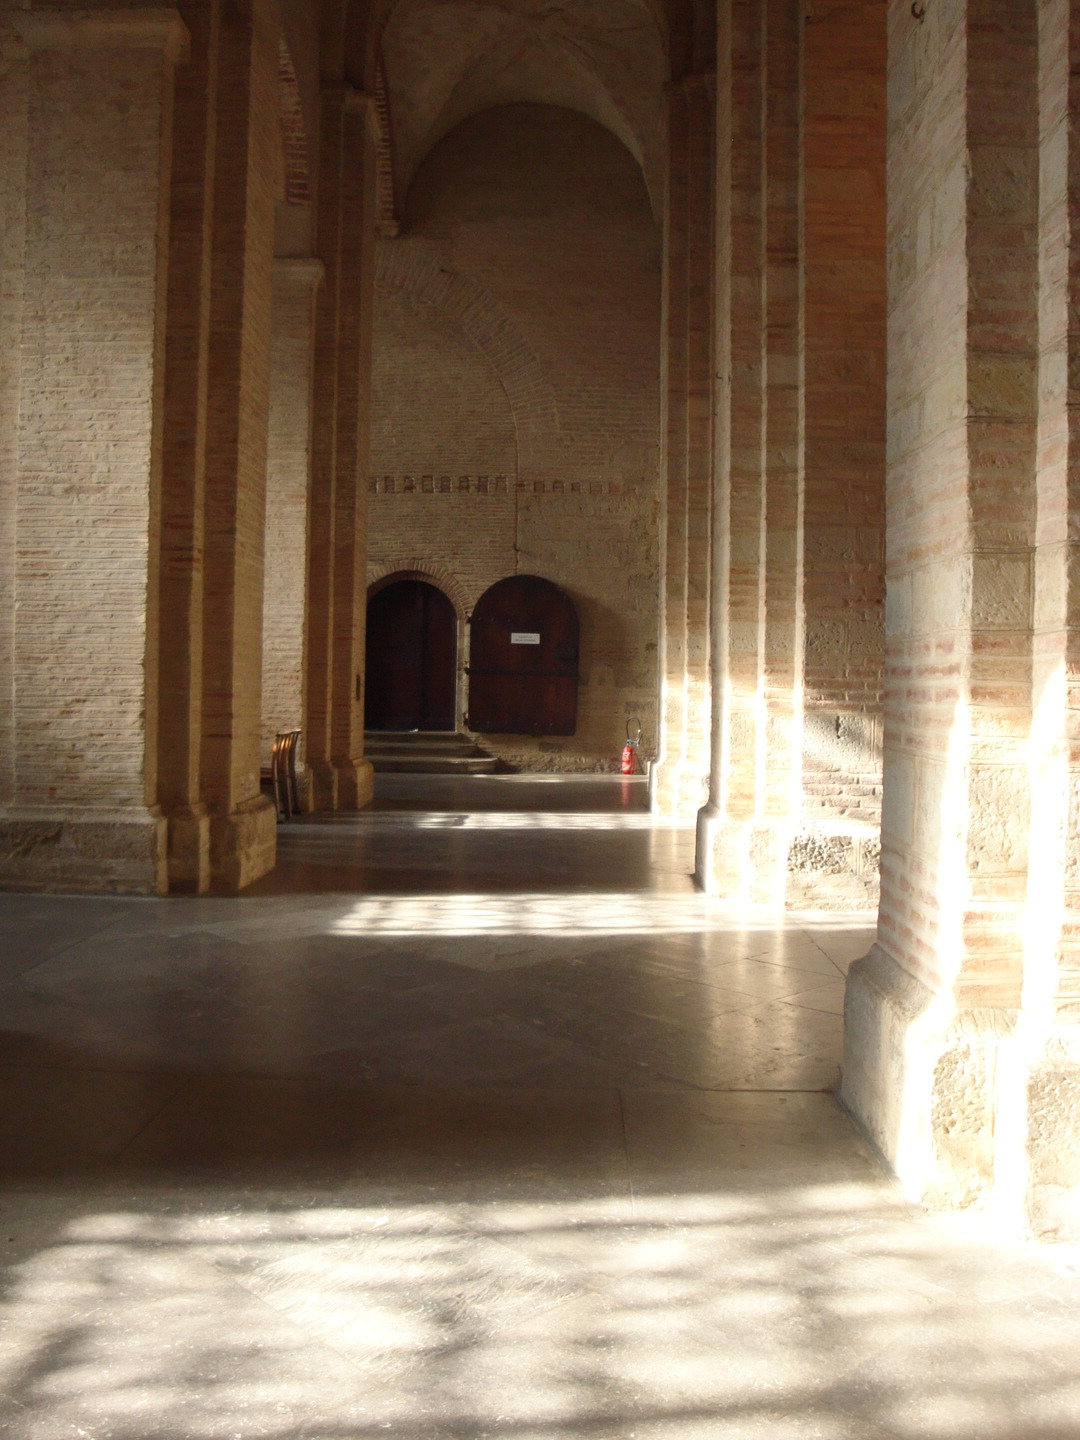 Basilique Saint Sernin, Toulouse, France, Interior corridor